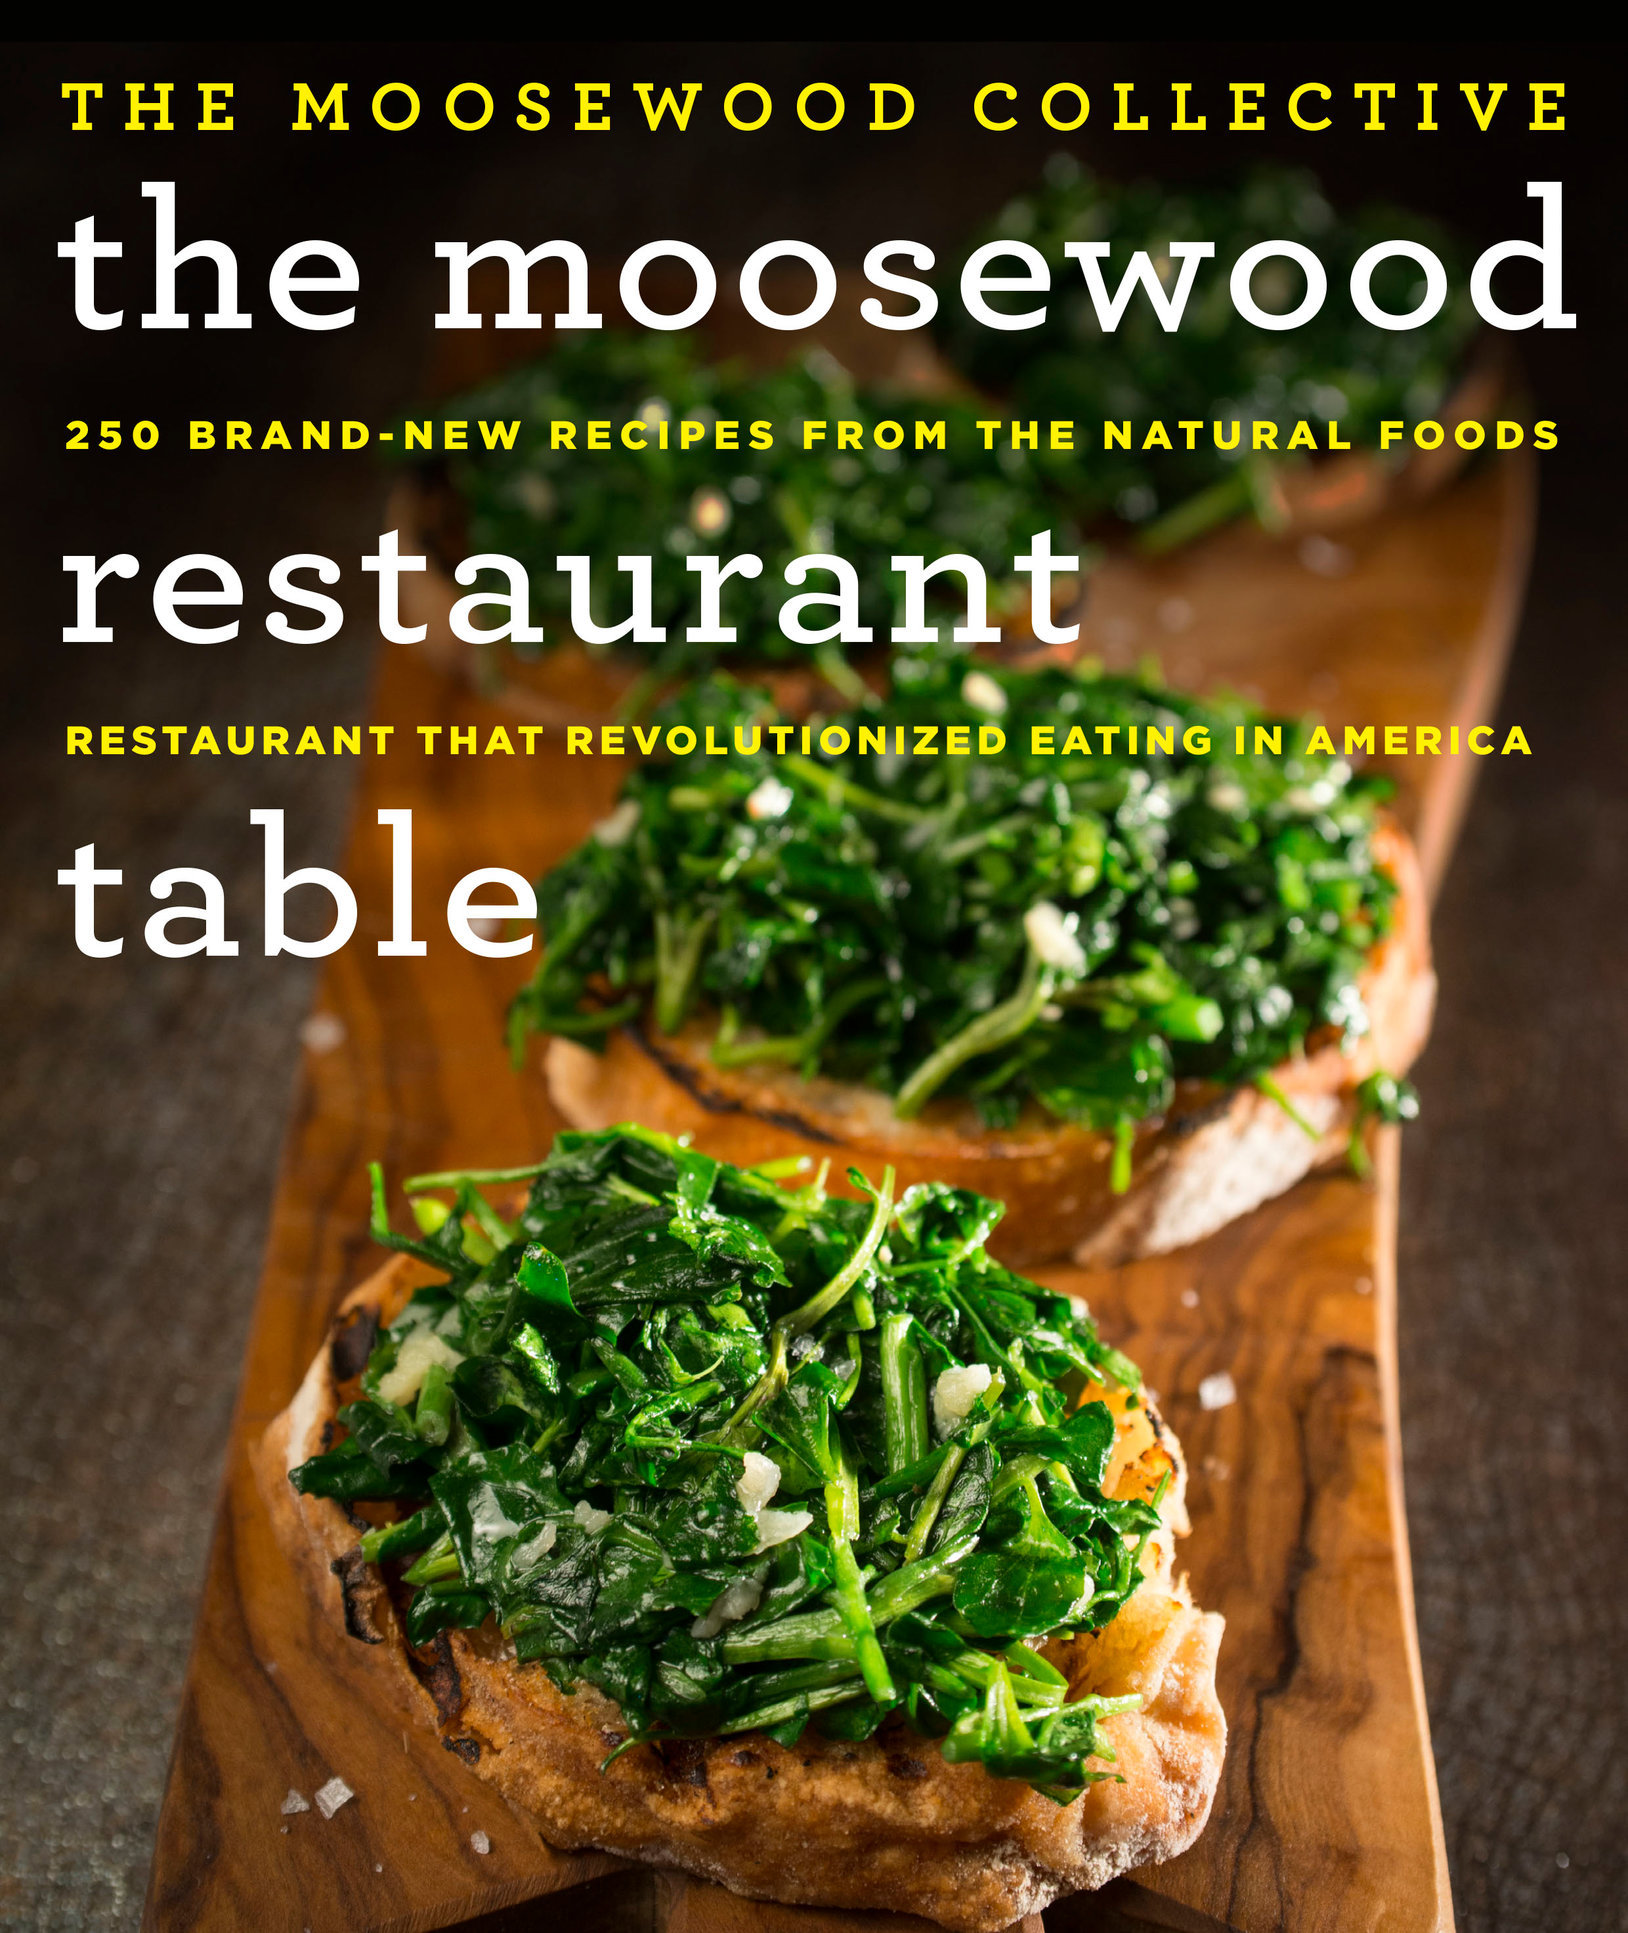 MOOSEWOOD RESTAURANT TABLE copy 2.jpg